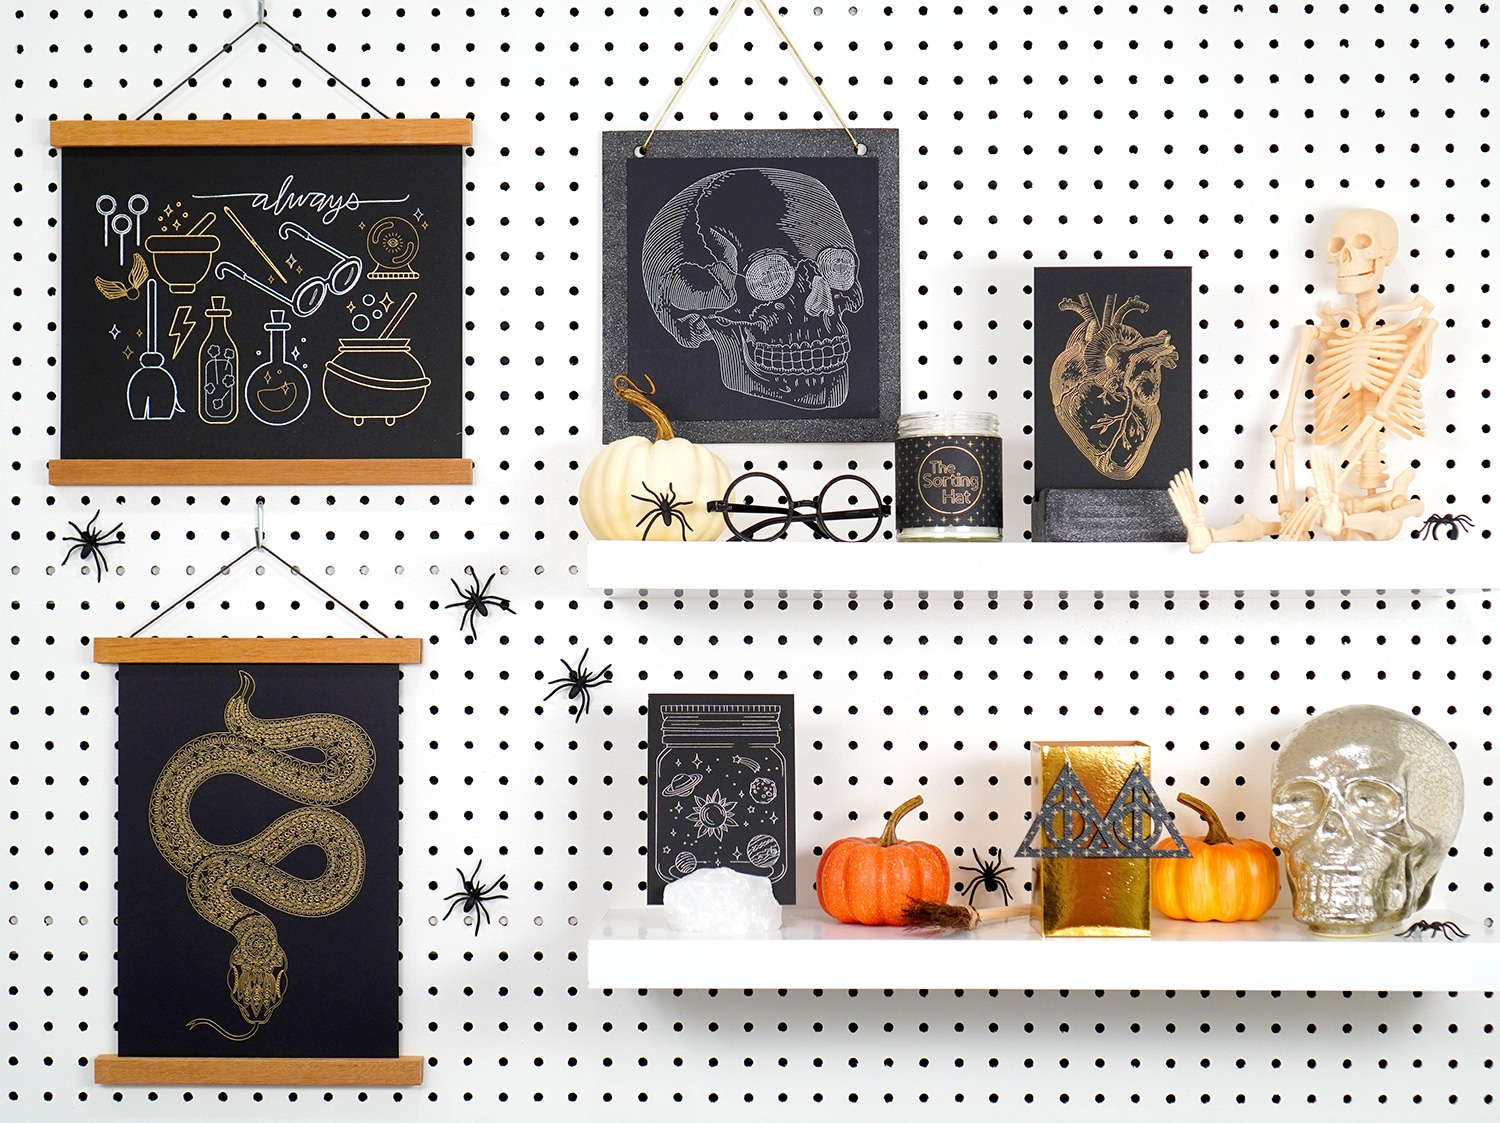 Foil Halloween art prints and Halloween Decorations on white shelves and pegboard